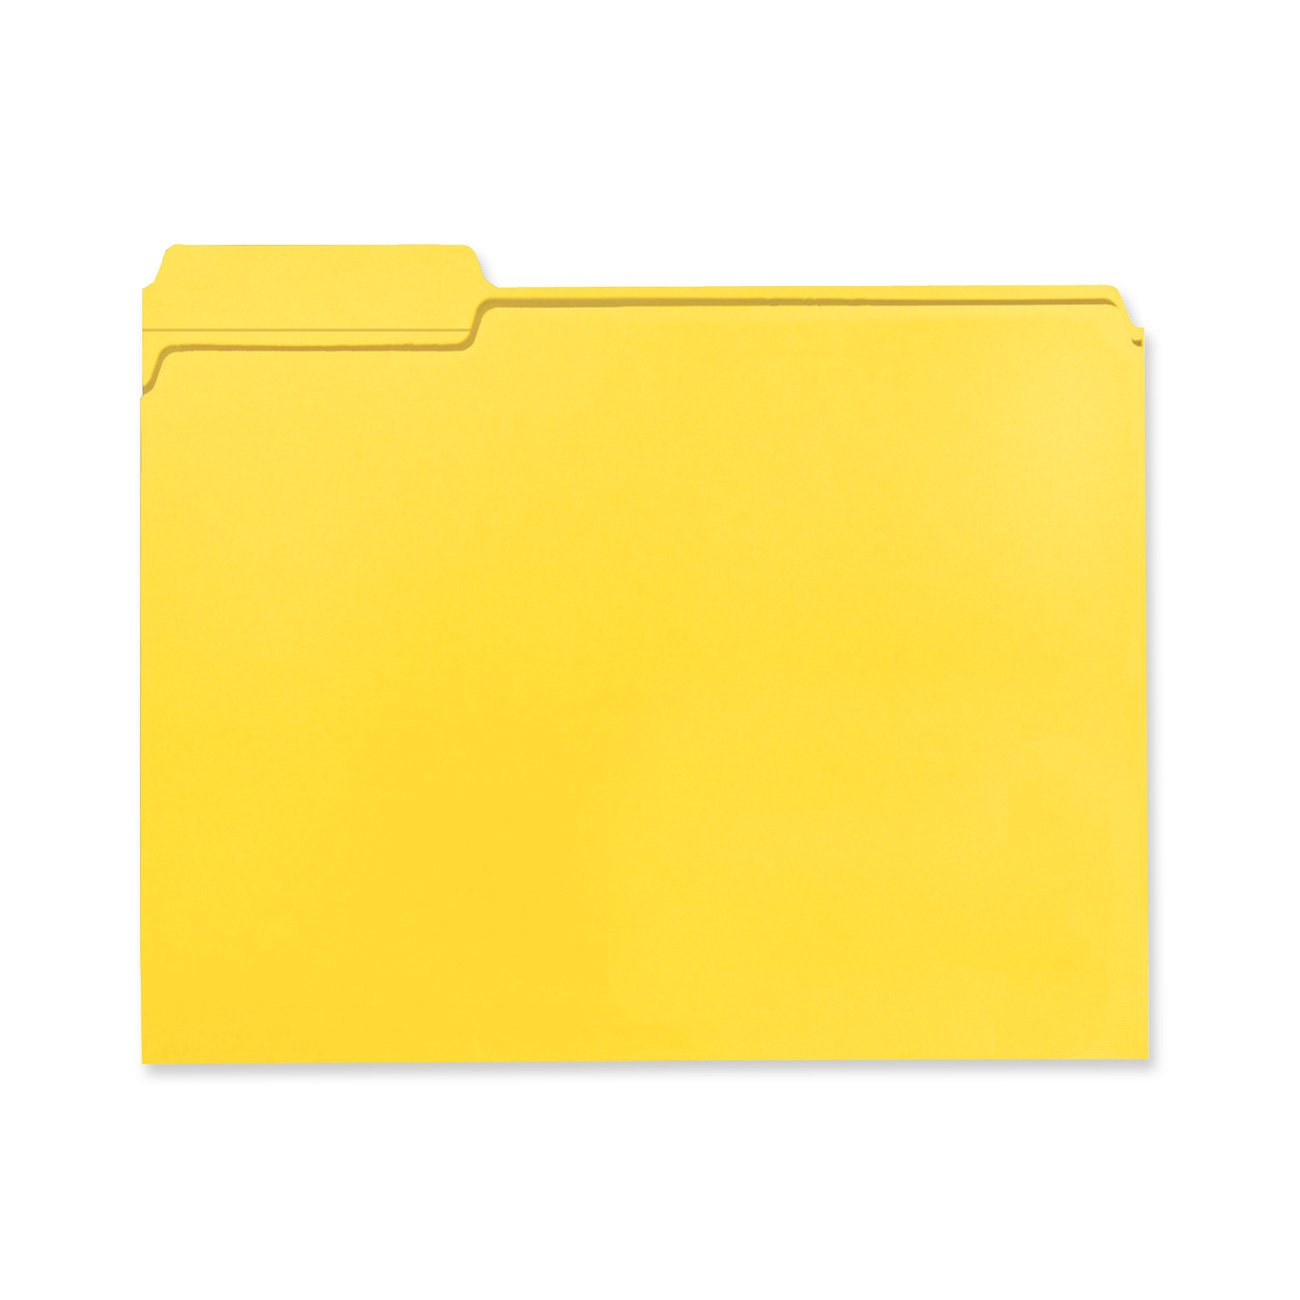 Smead 100% Recycled File Folder, Reinforced 1/3-Cut Tab, Letter Size, Yellow, 100 per Box (12938 )